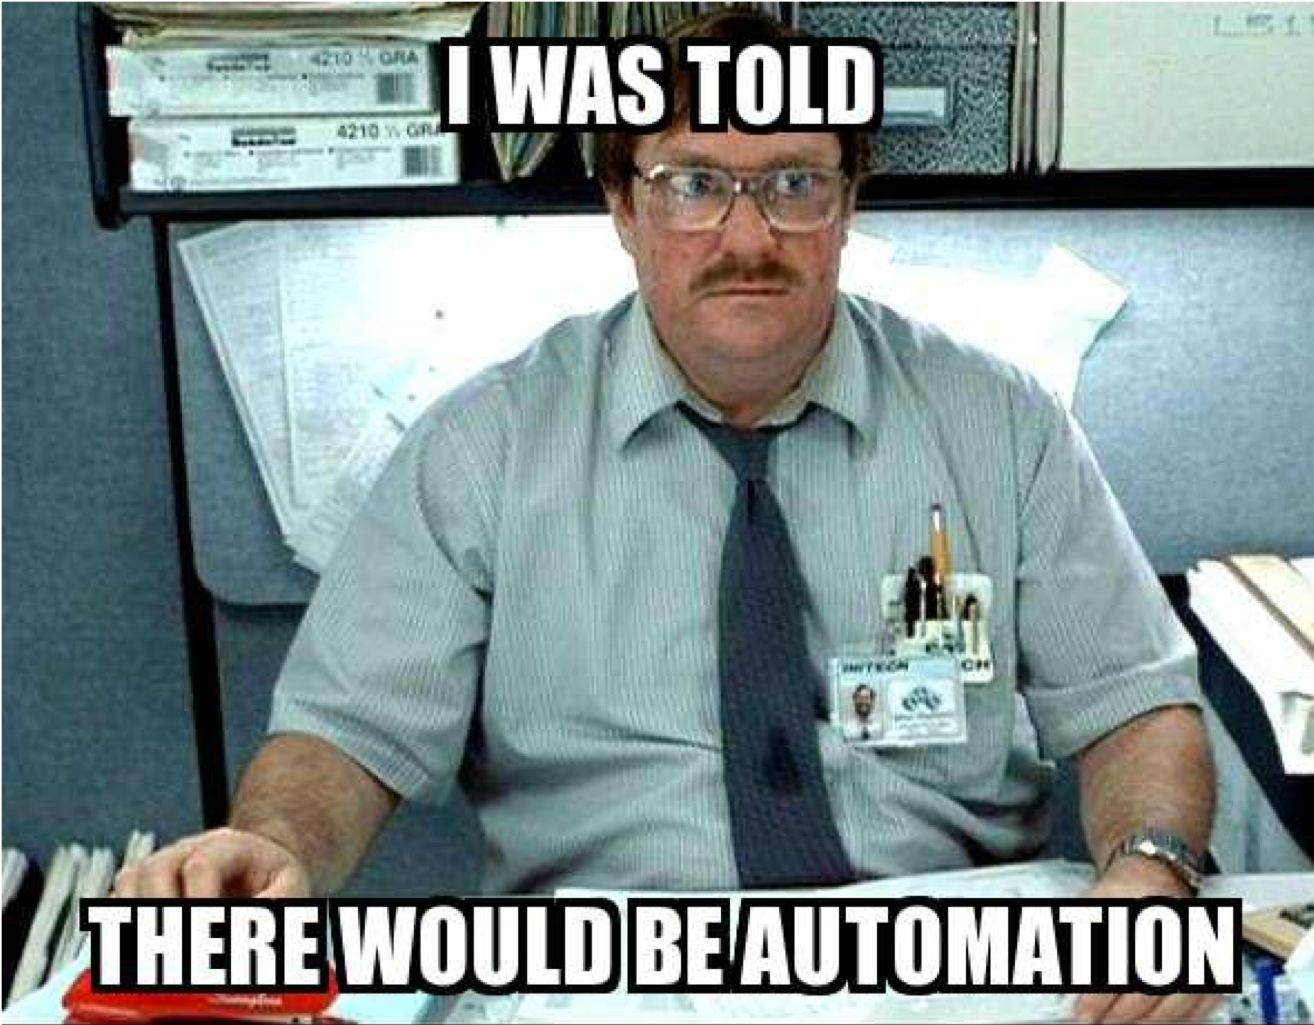 meme showing frustration of only partially automated software